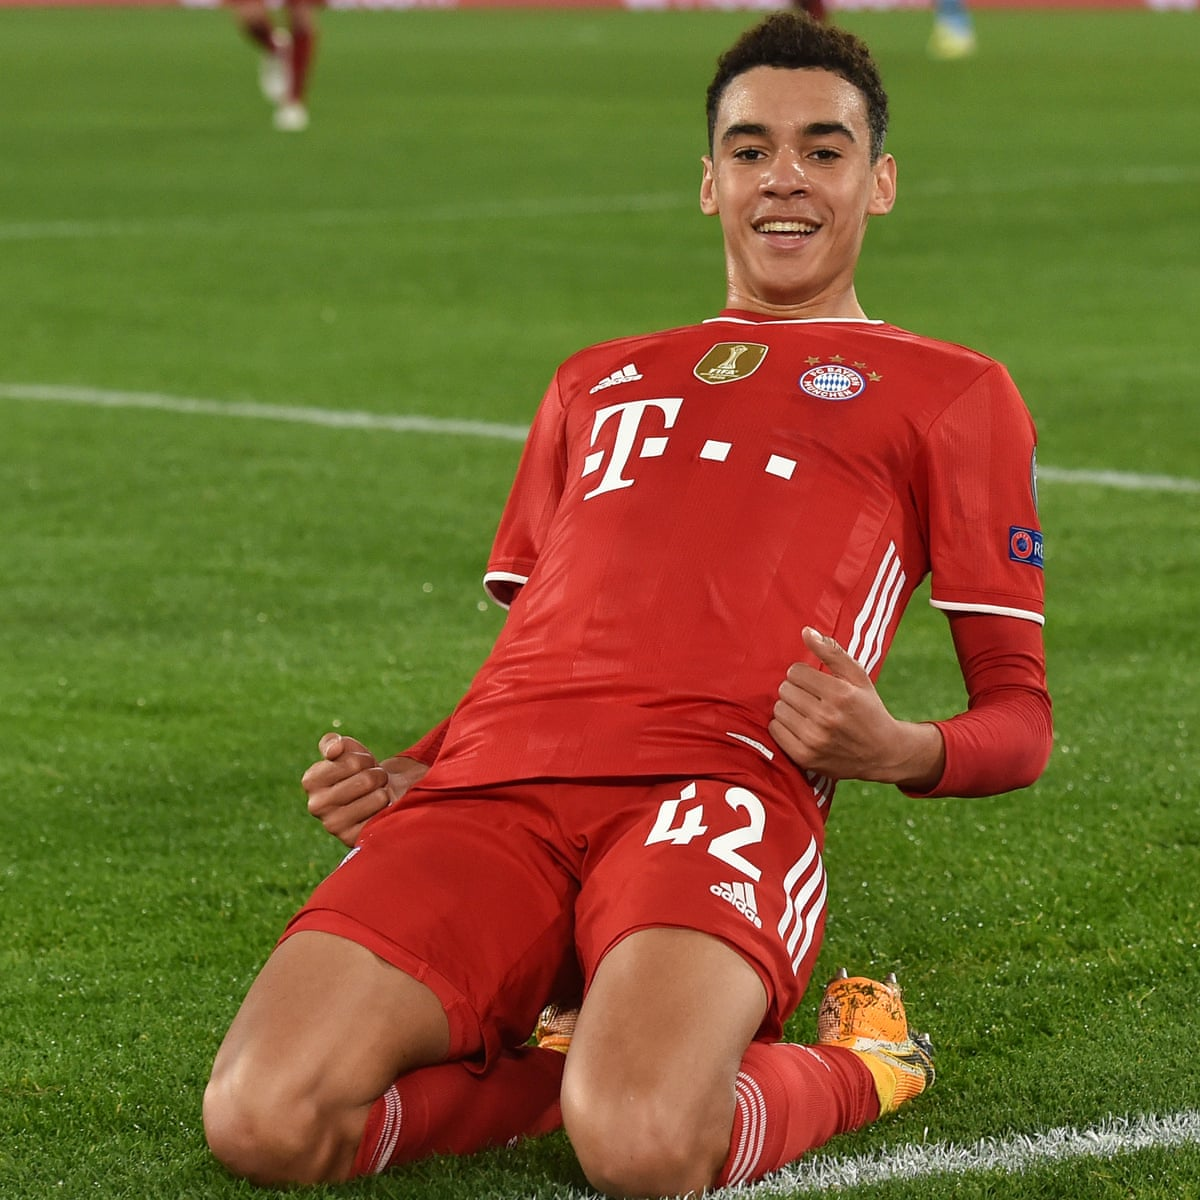 Bayern Munich's Jamal Musiala pledges future to Germany rather than England  | Germany | The Guardian